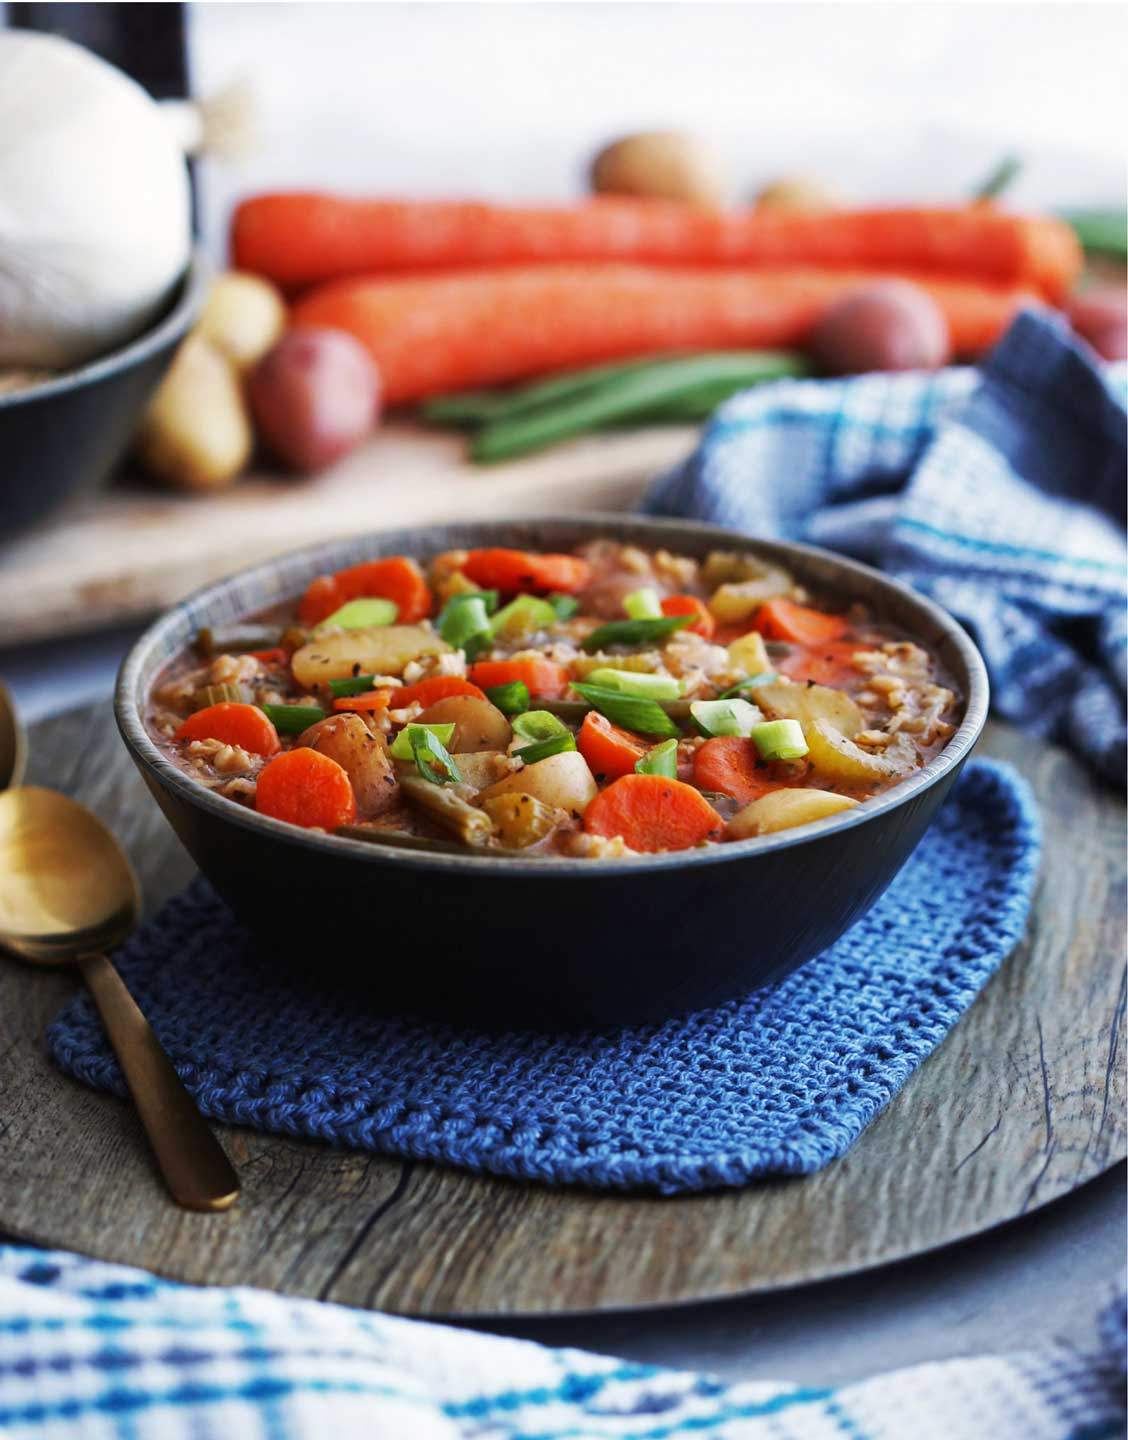 So much hearty, homestyle goodness in every bowl of this vegan Instant Pot Hearty Vegetable and Brown Rice Soup from Marie at Yay! For Food. Be sure to check out all the other delicious, healthy vegetable soups in our line-up, too! Lots of great ideas for hearty, meatless Monday dinners!